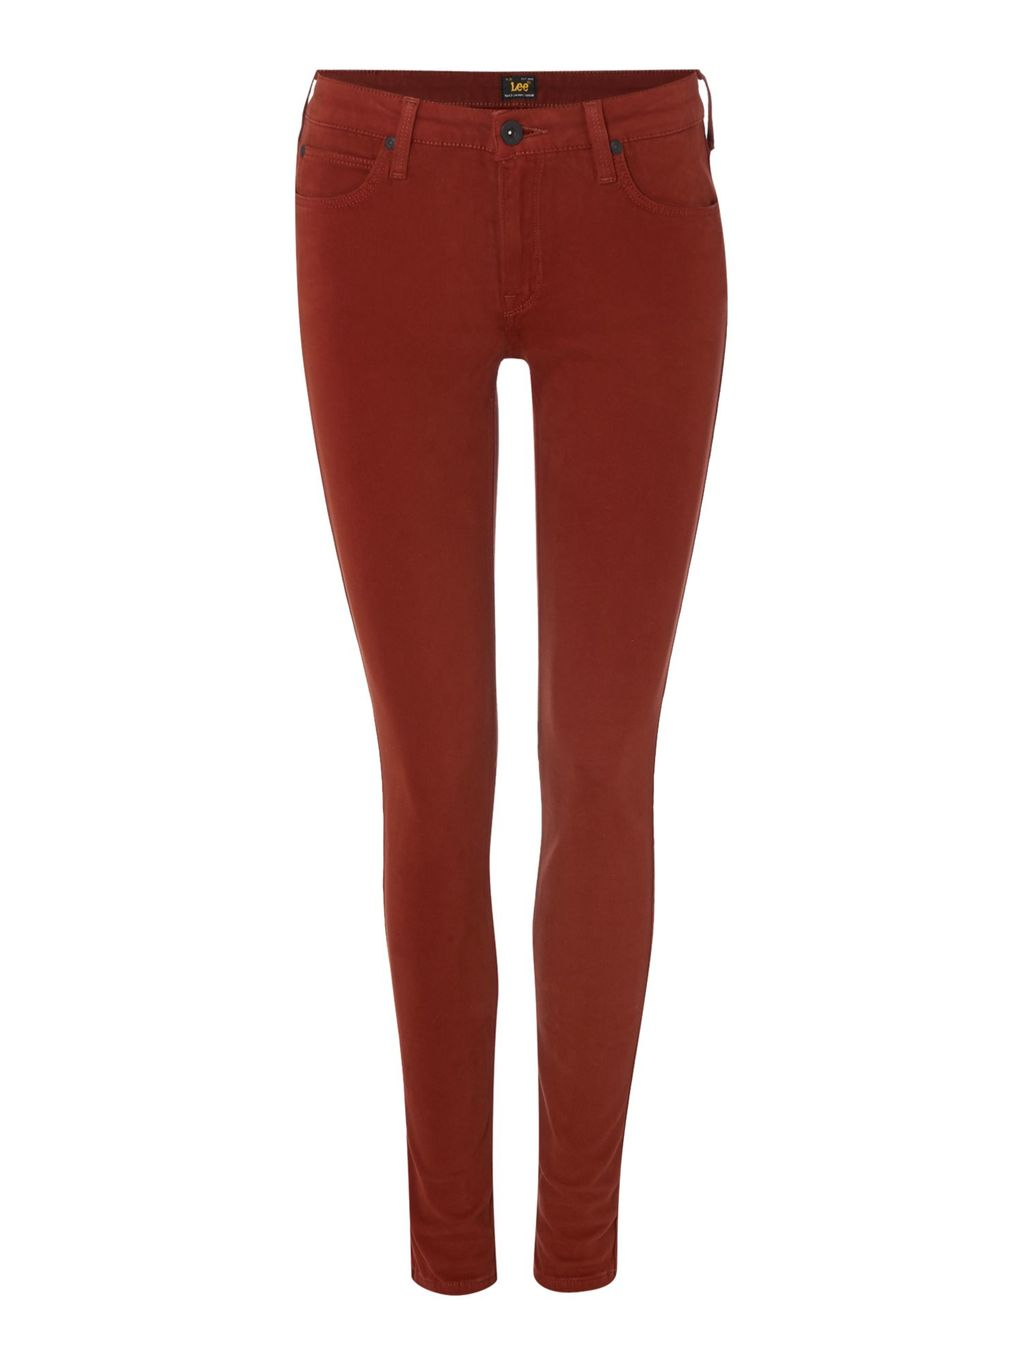 Scarlett Mid Rise Skinny Jean In Brick, Red - style: skinny leg; length: standard; pattern: plain; pocket detail: traditional 5 pocket; waist: mid/regular rise; predominant colour: terracotta; occasions: casual; fibres: cotton - stretch; texture group: denim; pattern type: fabric; season: a/w 2015; wardrobe: highlight